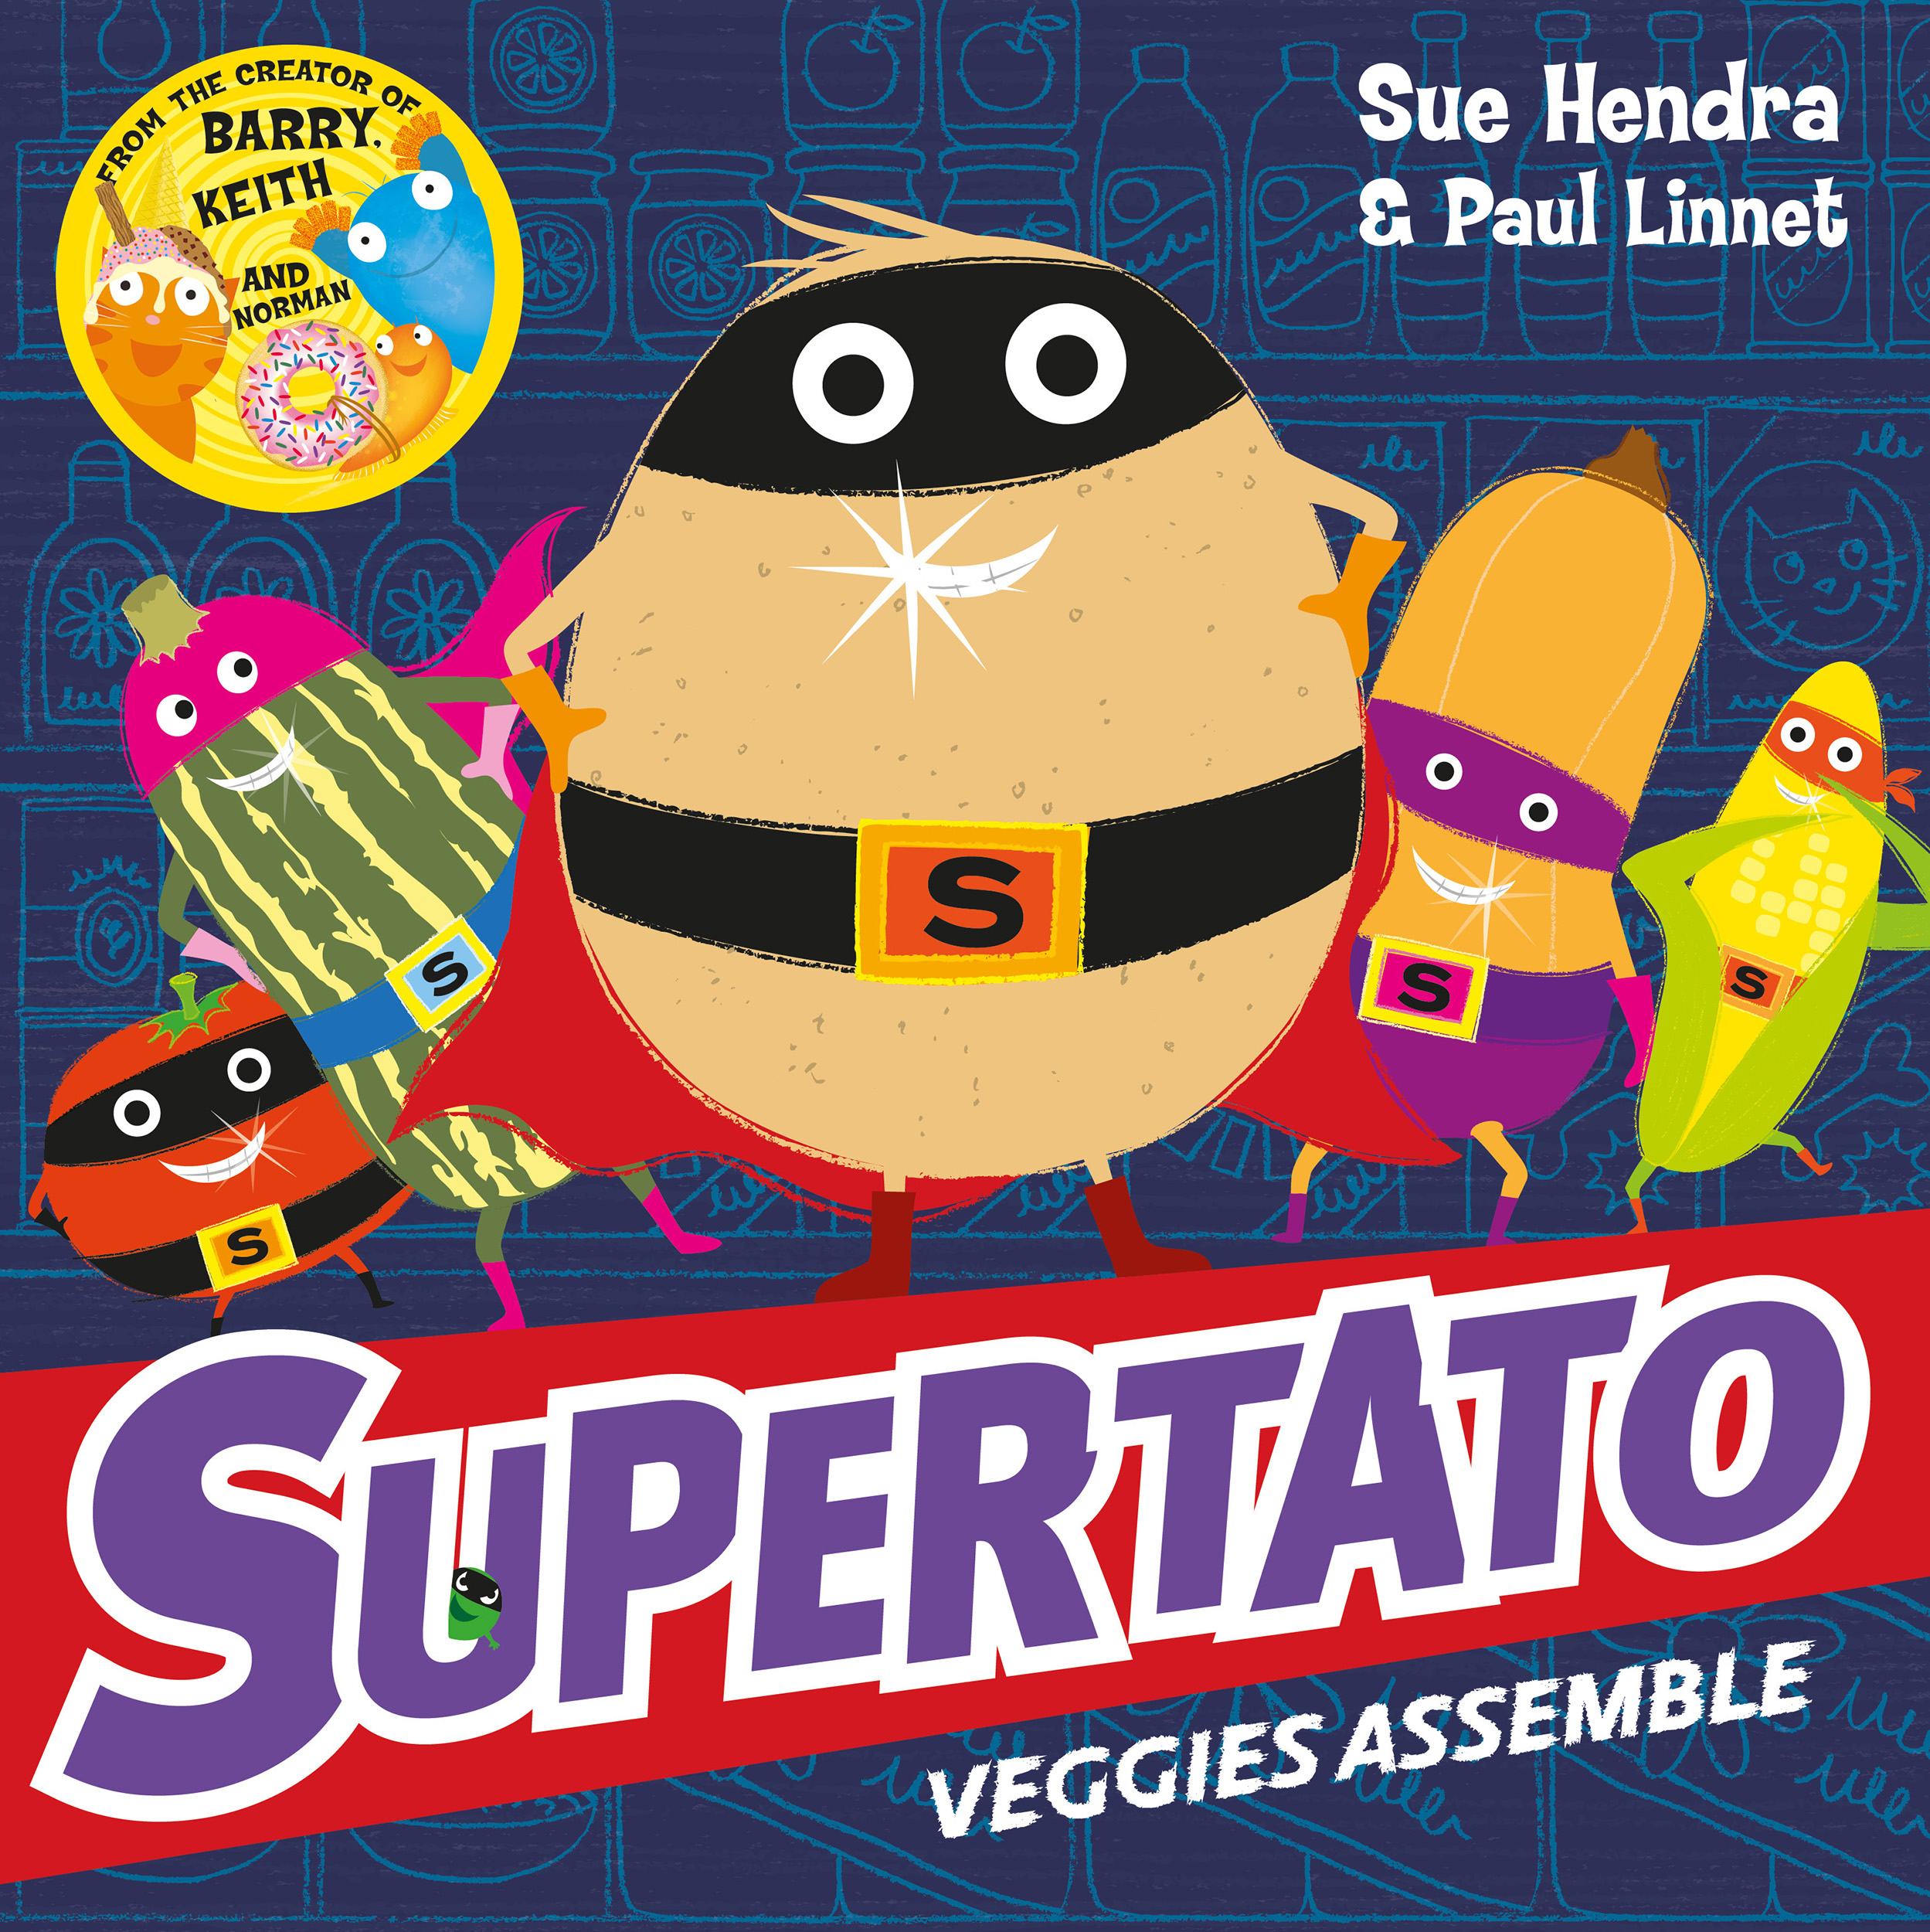 Supertato Veggies 1.30pm